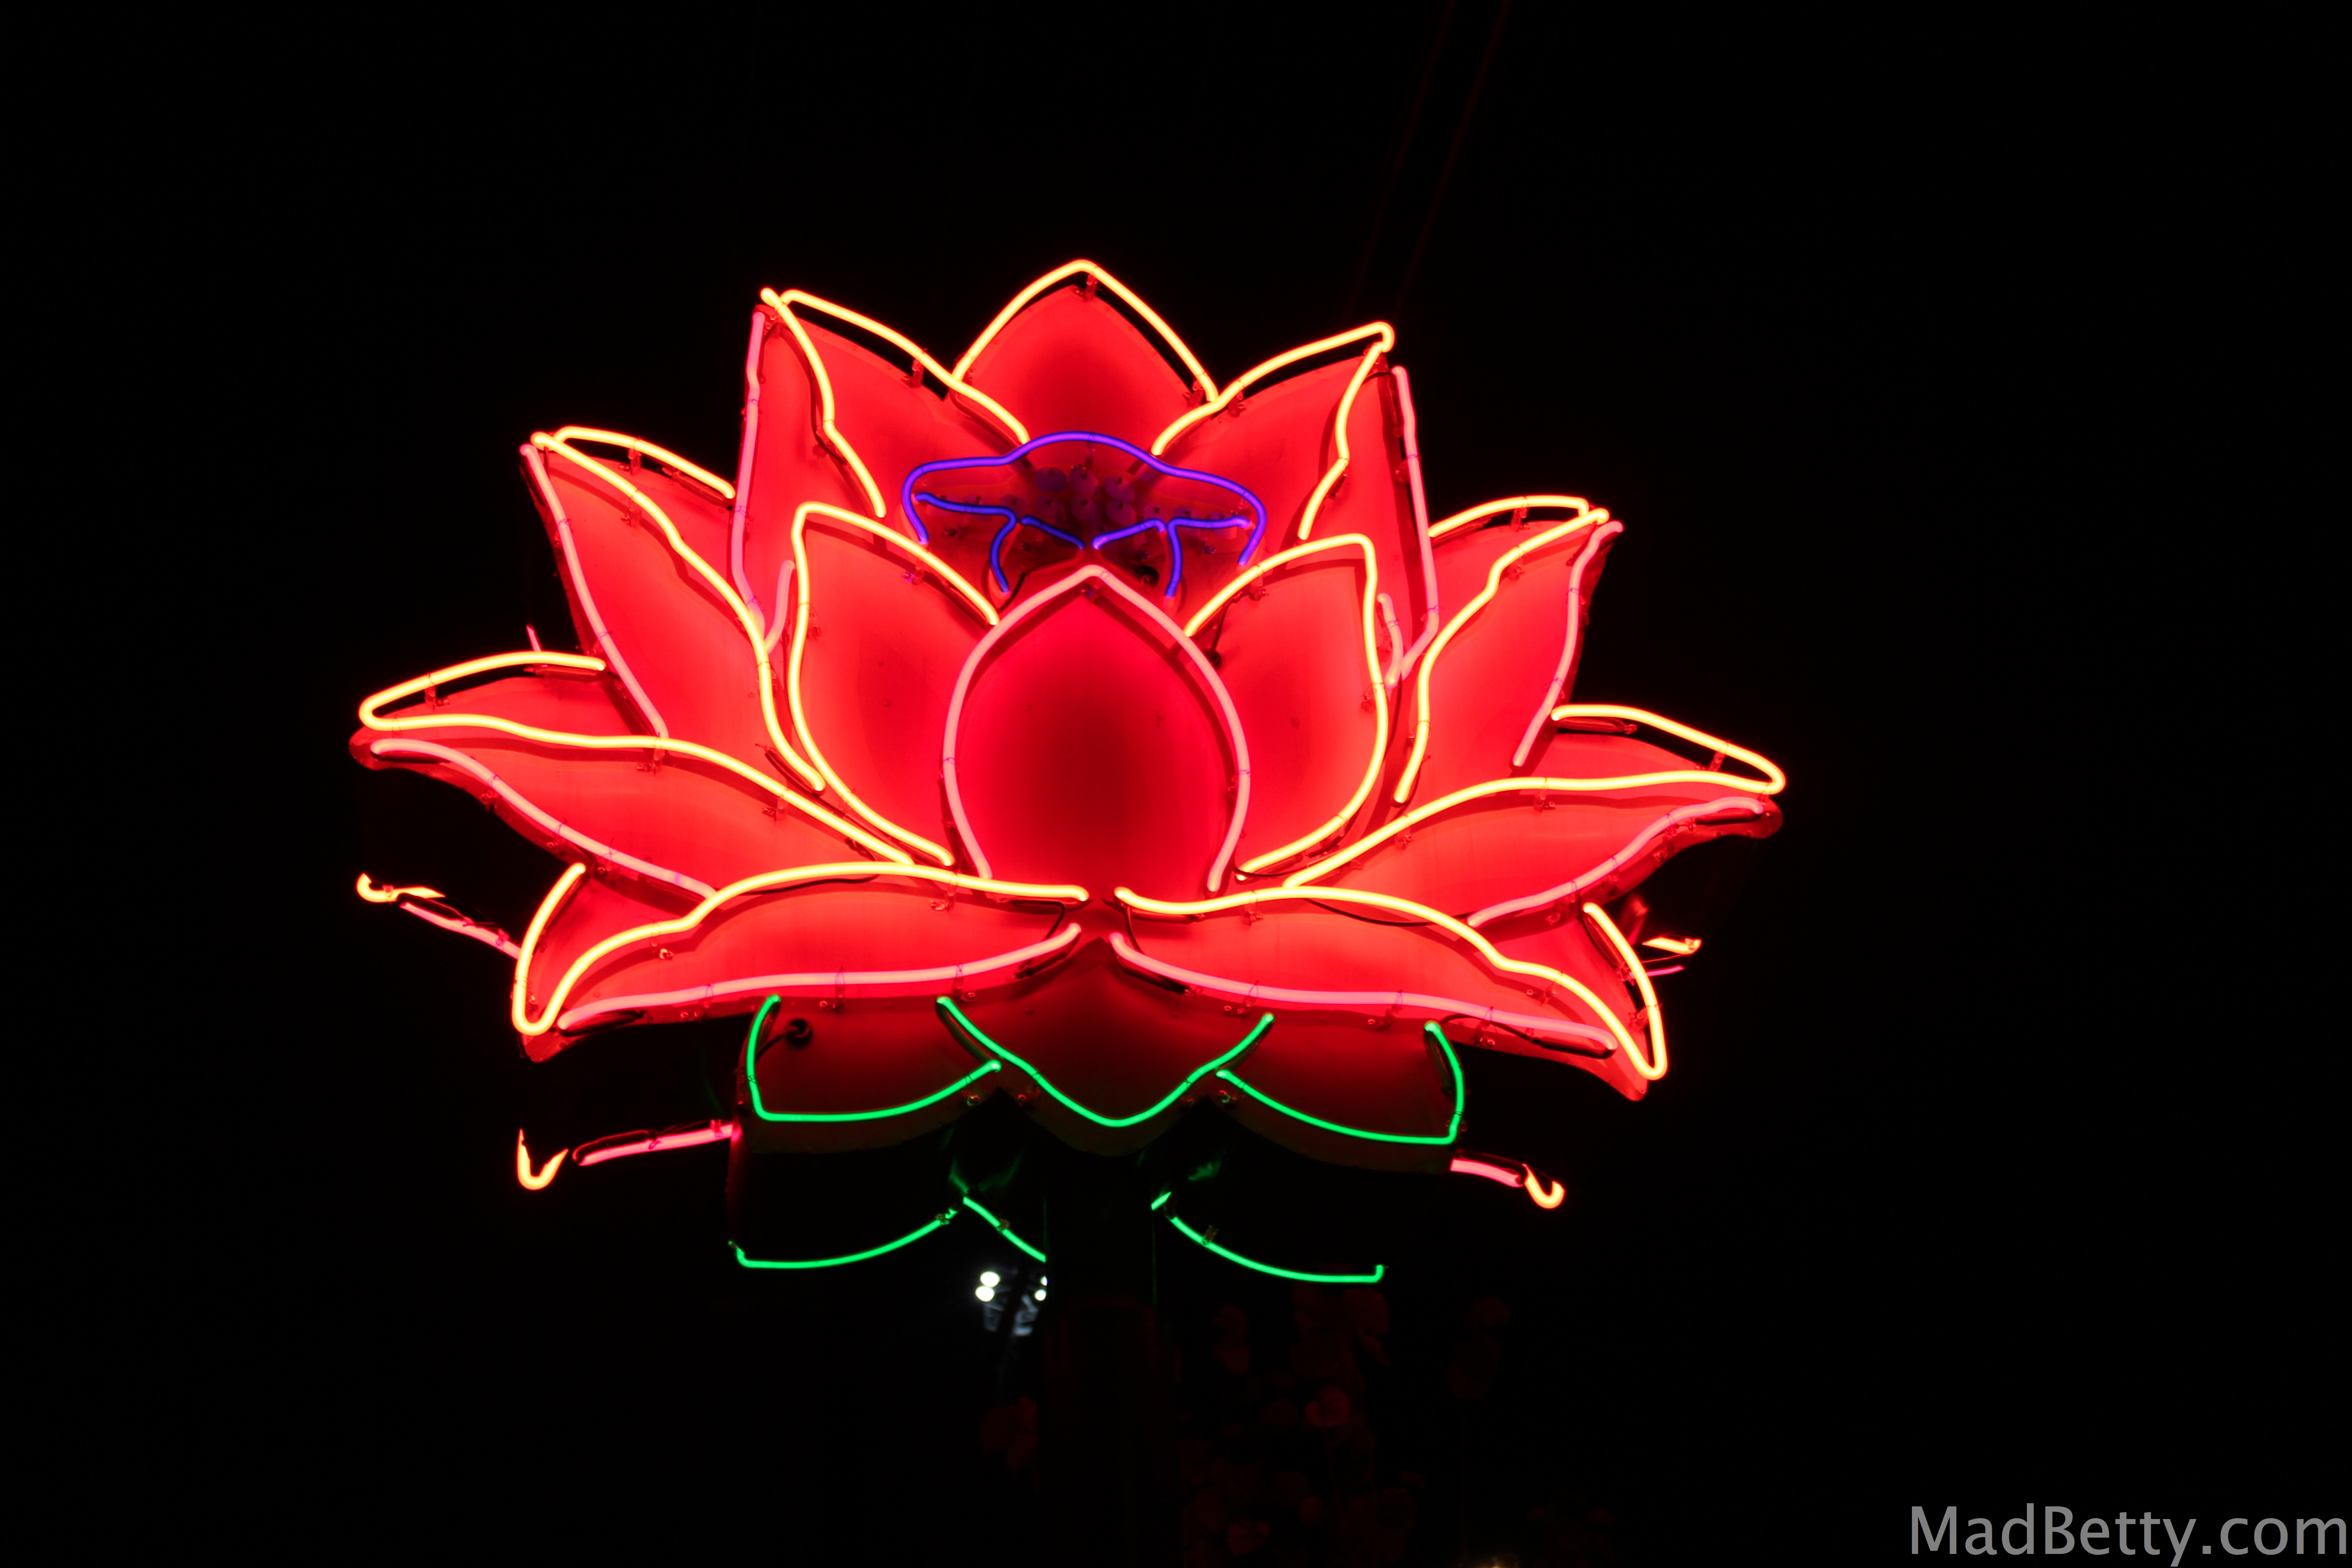 South austin archives page 2 of 2 mad betty neon lotus flower dhlflorist Choice Image